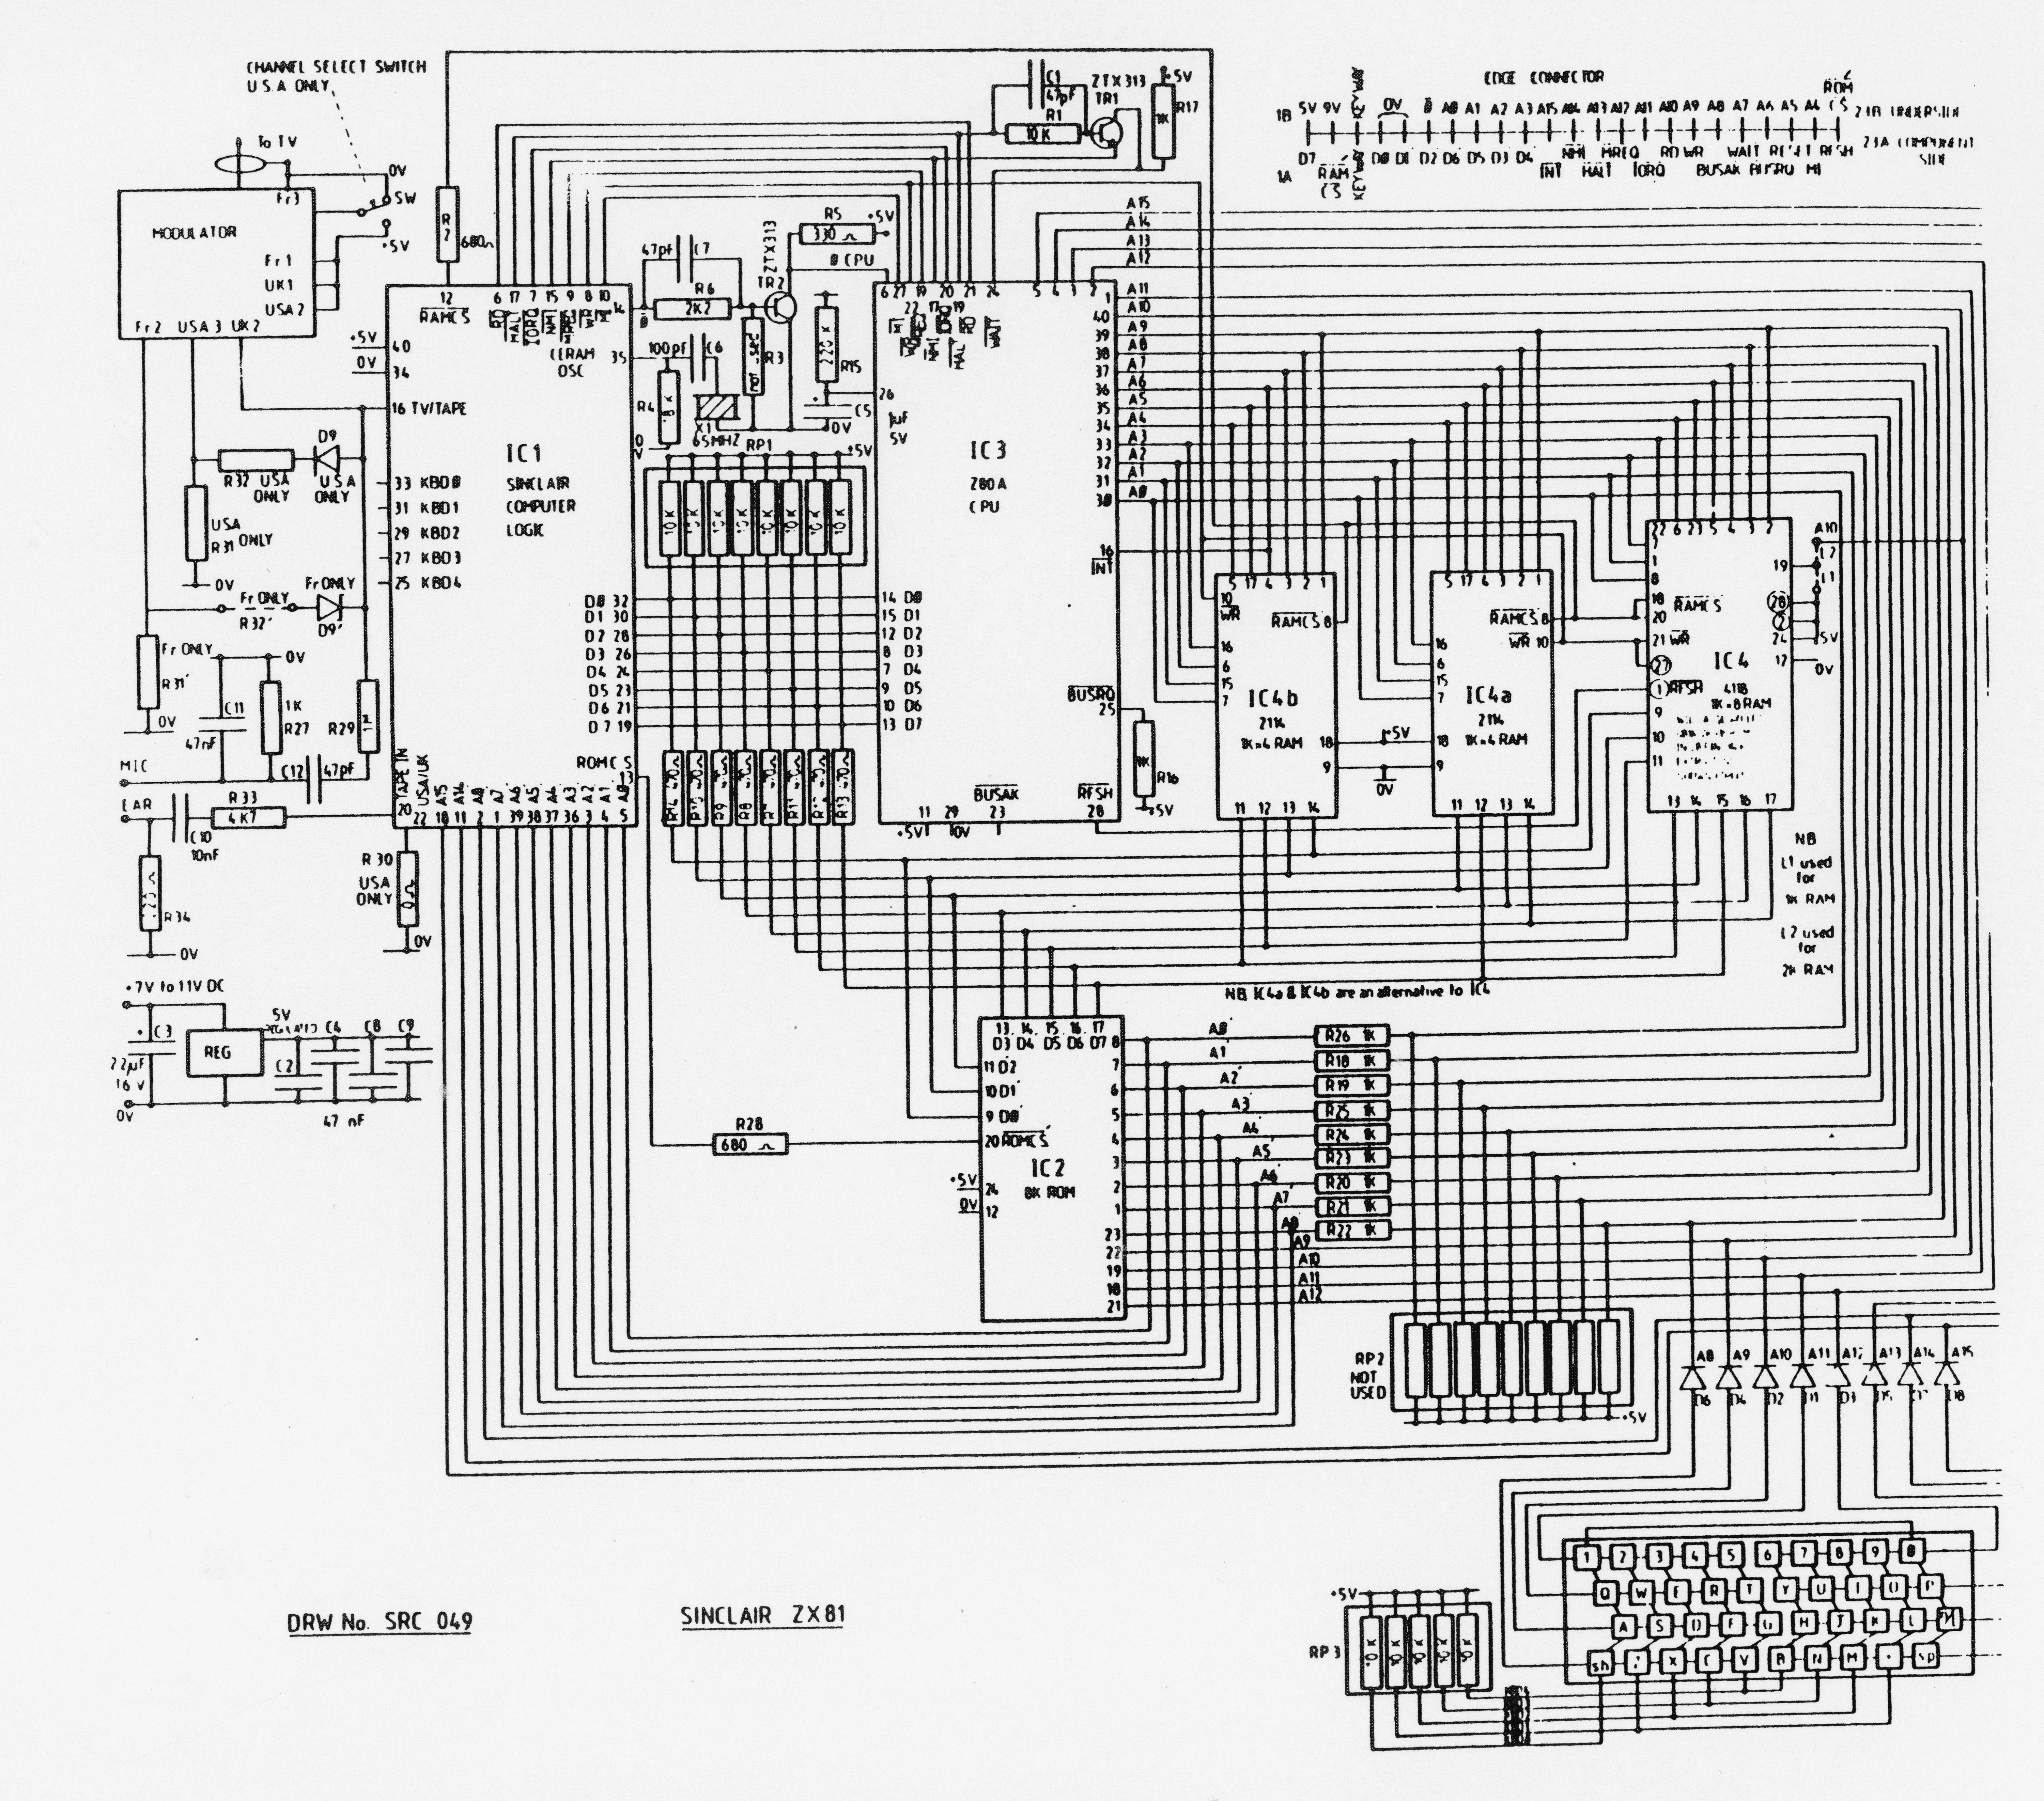 sinclair zx81 kit build zx81 flight simulator schematic (opens in a new window)